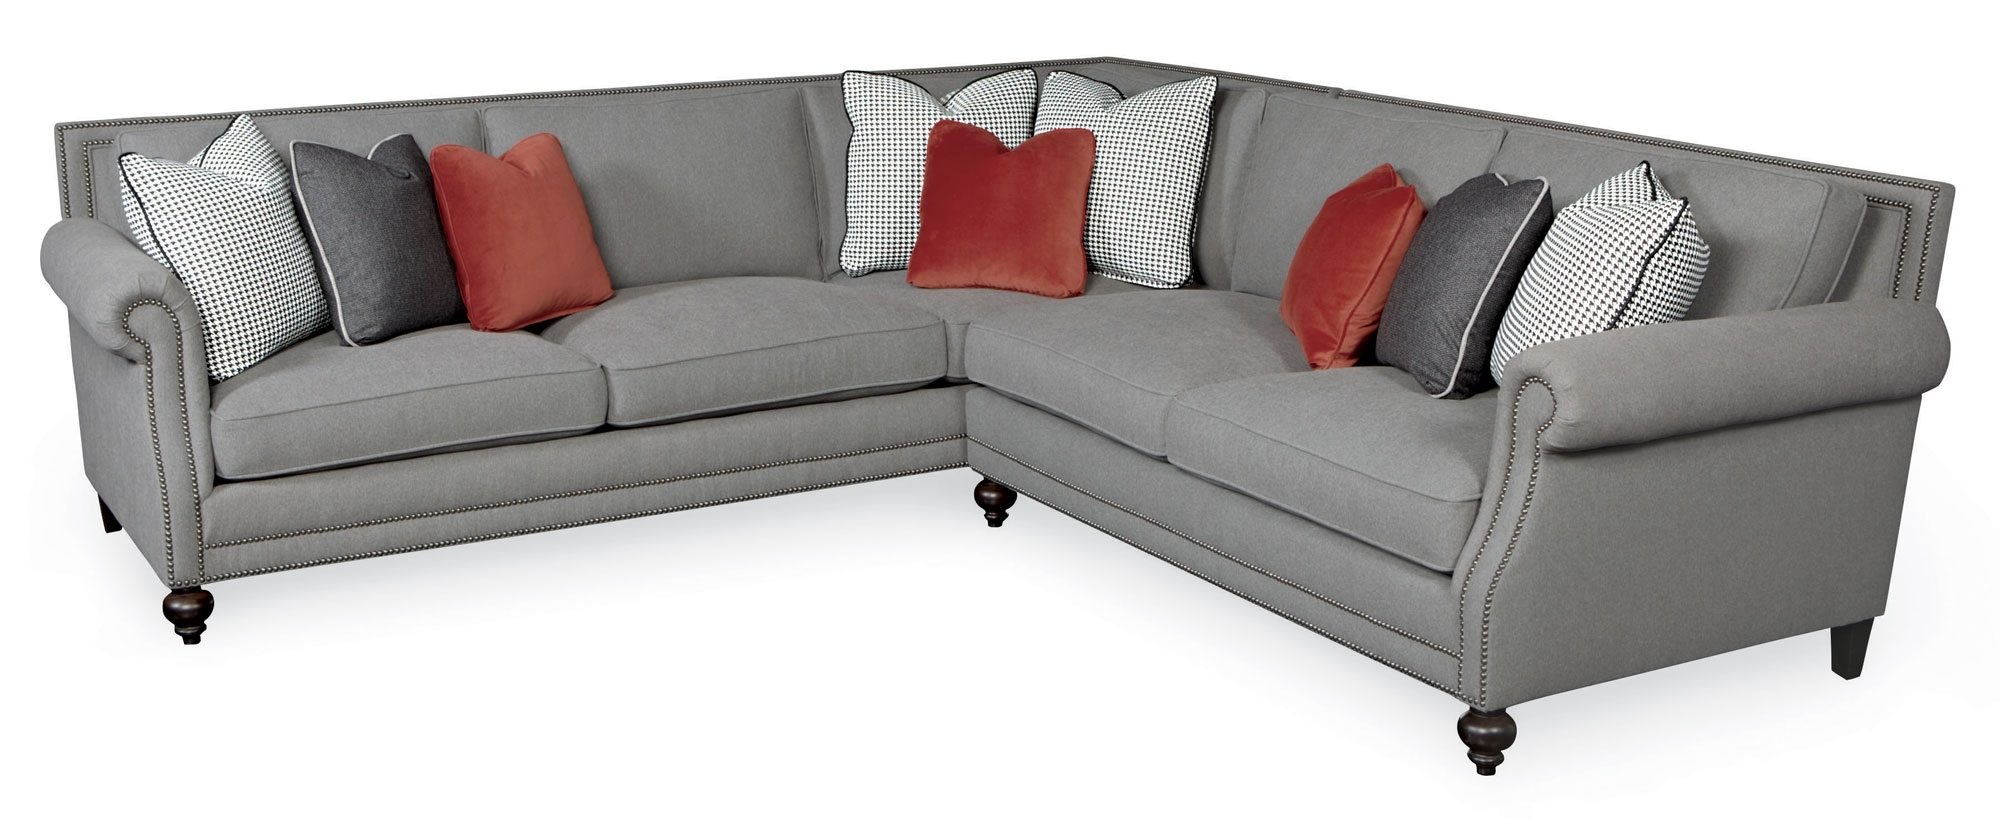 Sectional Sofas With Nailheads Throughout Favorite Sectional Sofa Design: Nailhead Sectional Sofa Fabric Leather (View 15 of 20)